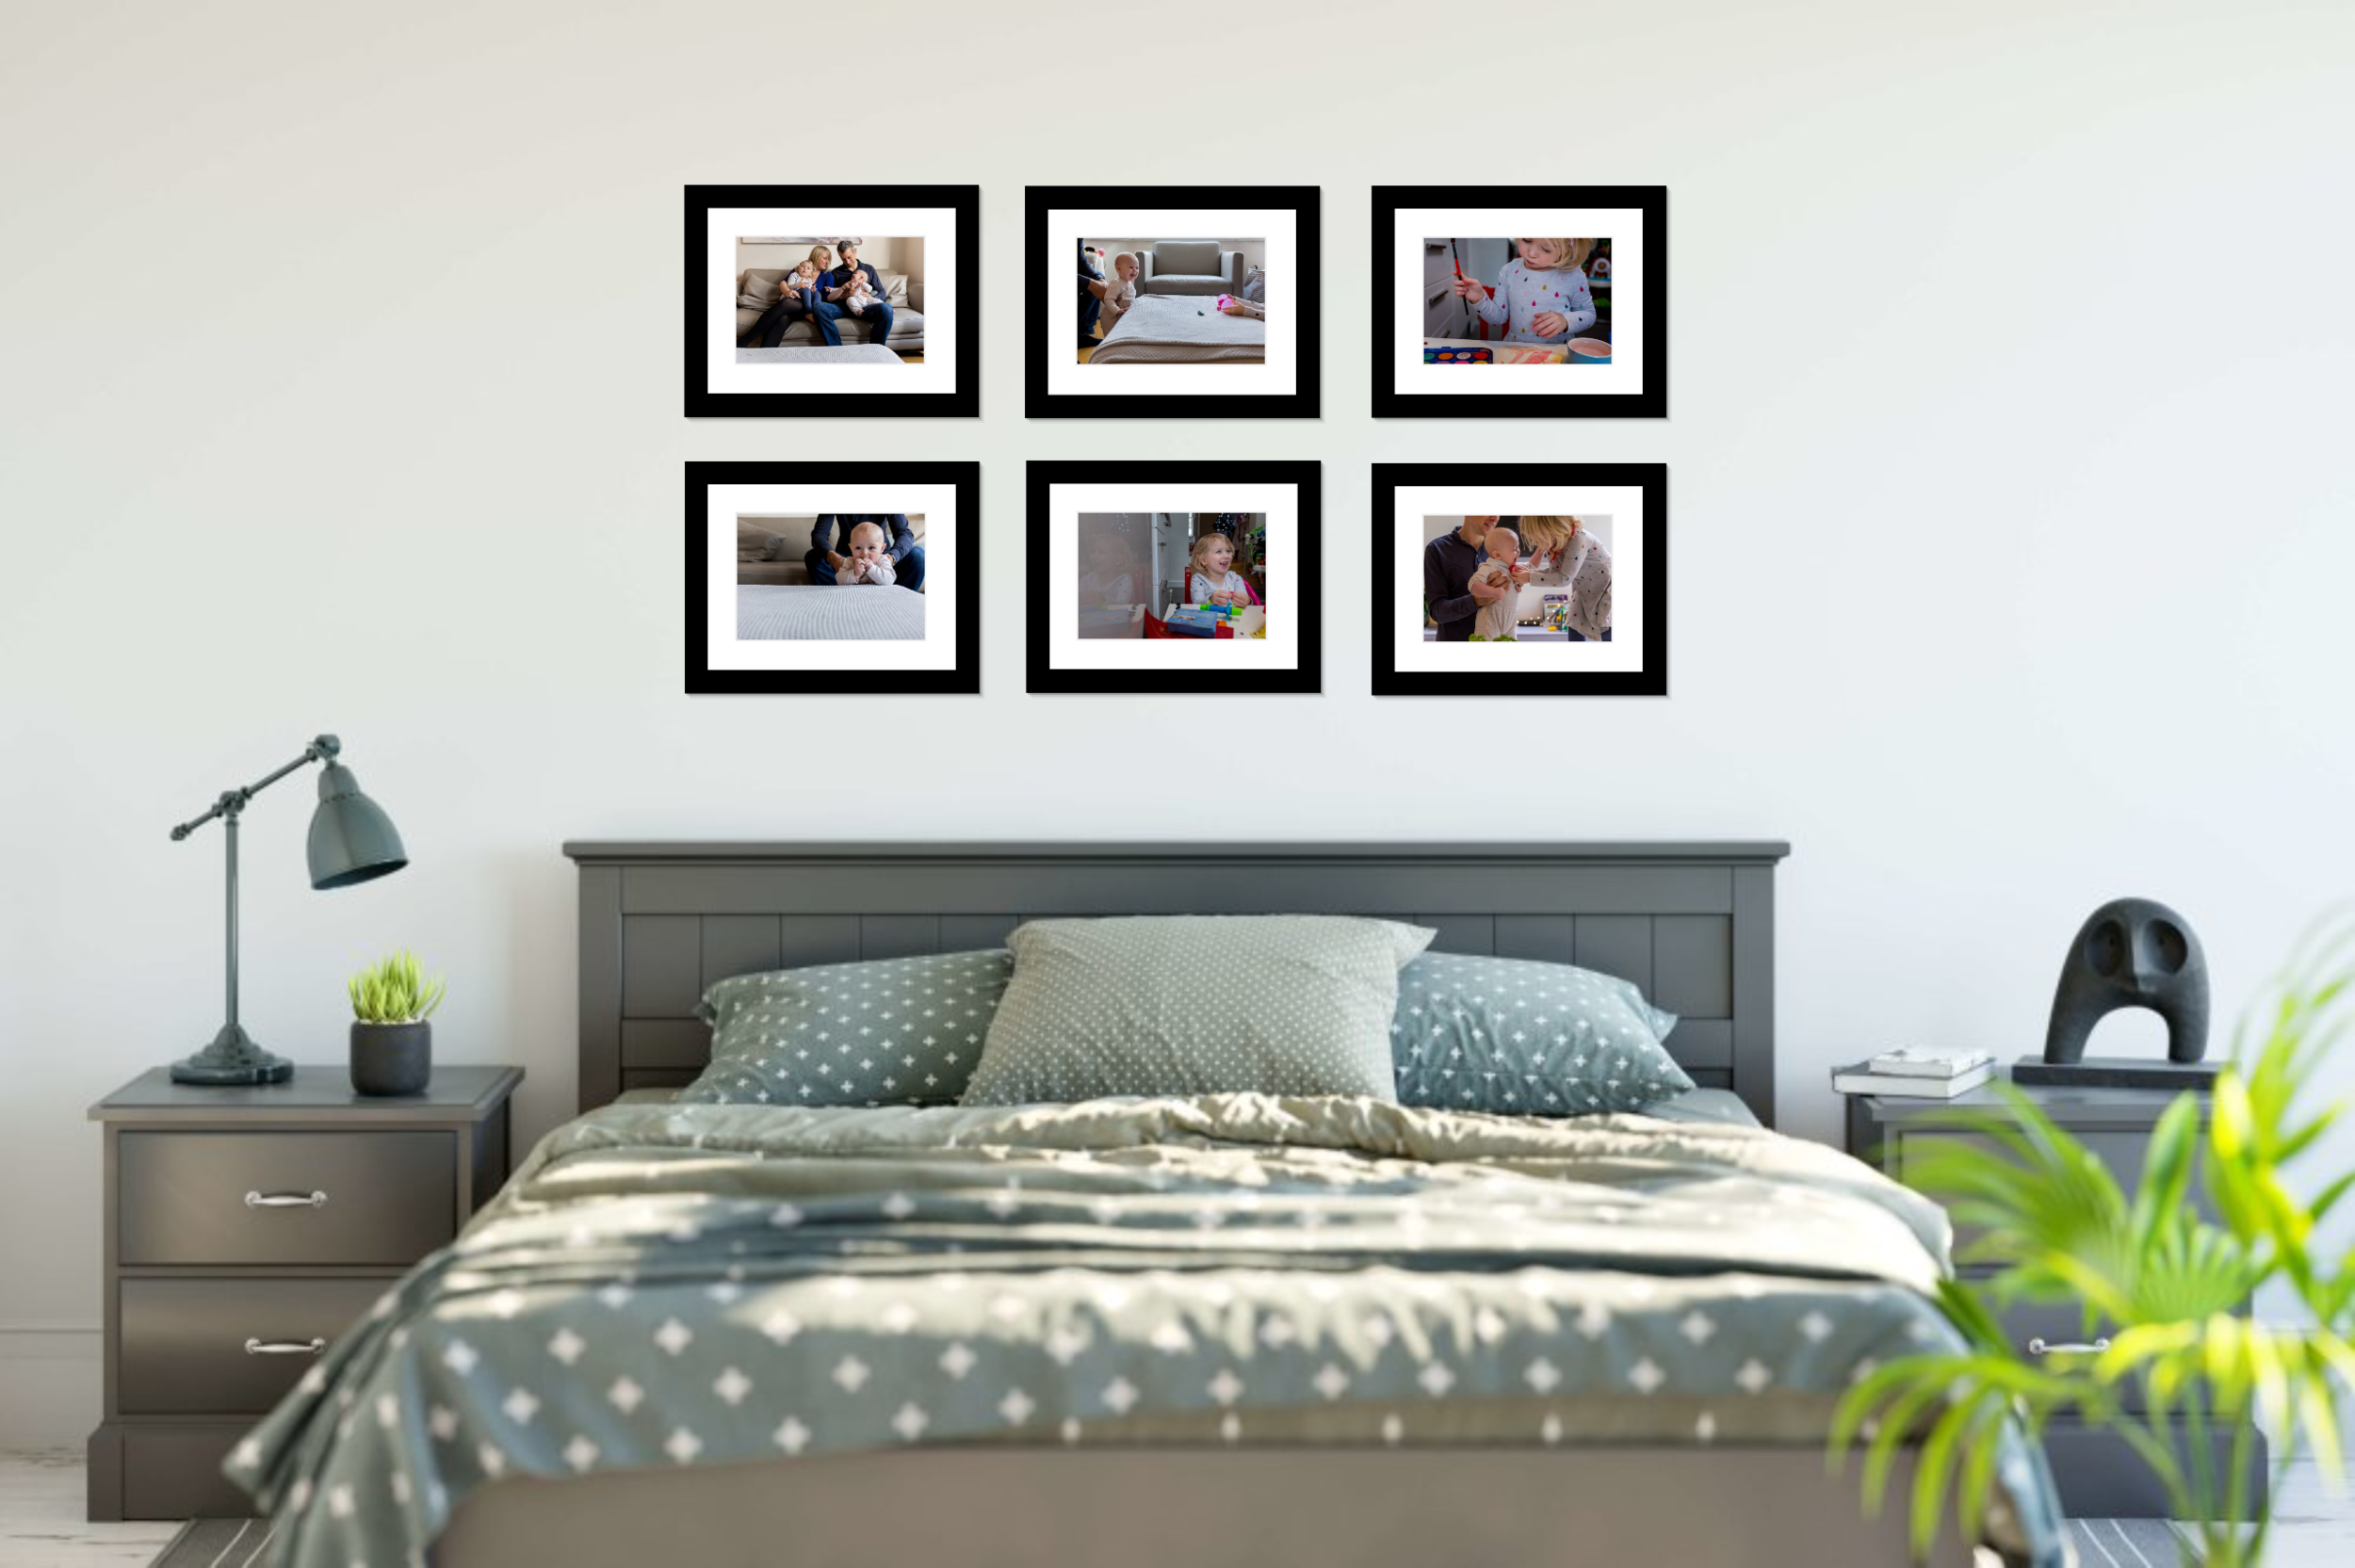 Sample bedroom with framed wall art display of photos from documentary family photo session.